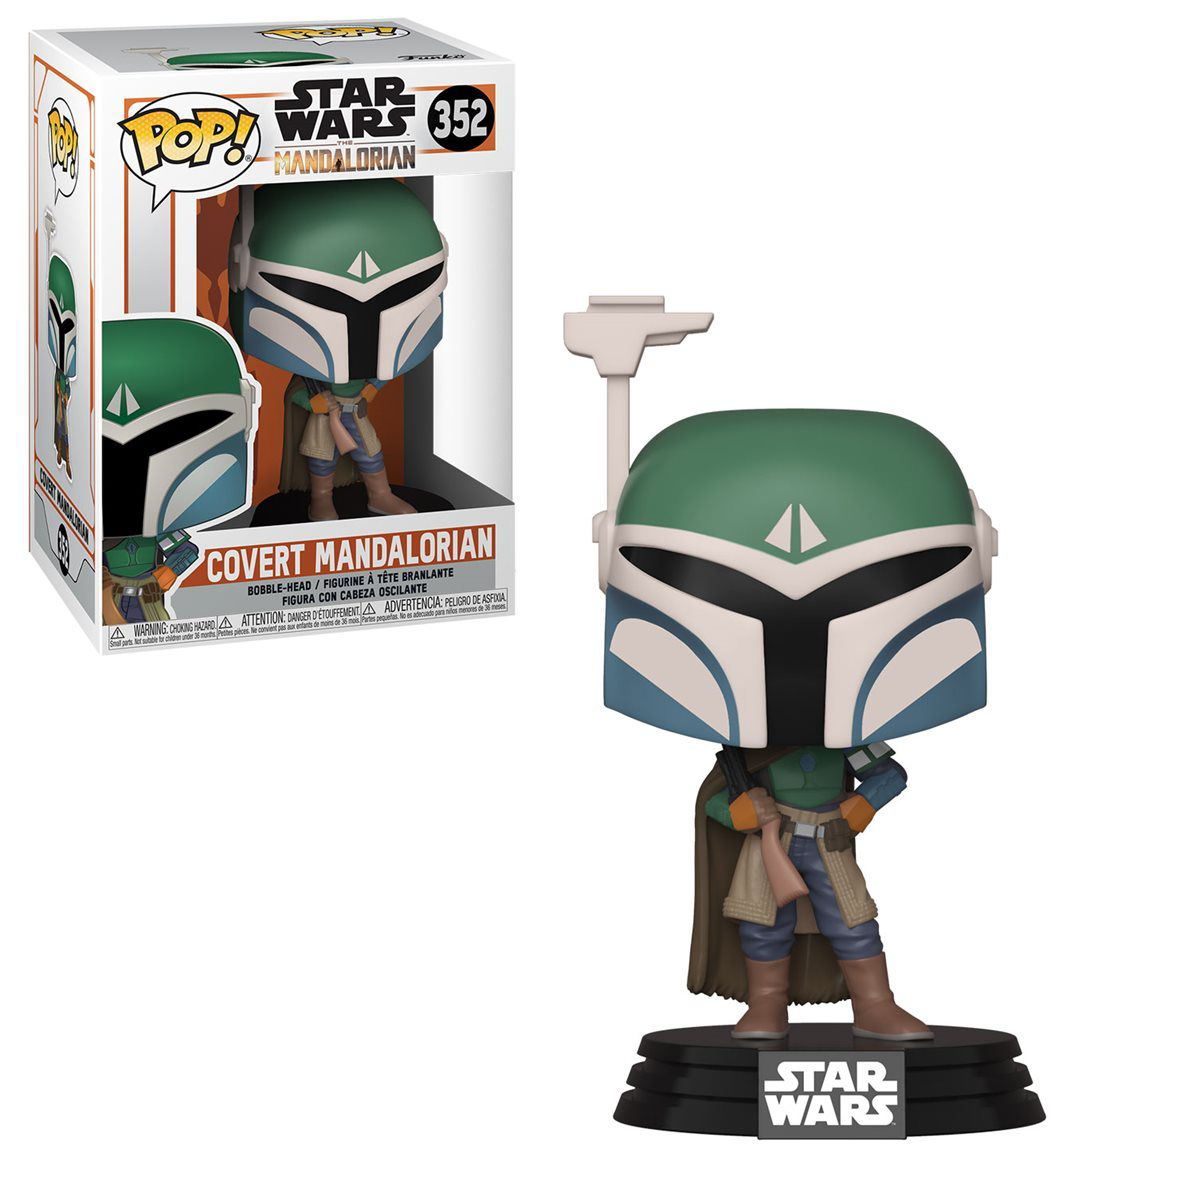 Funko Pop! Covert Mandalorian: The Mandalorian (Star Wars) Disney+ #352 - Funko